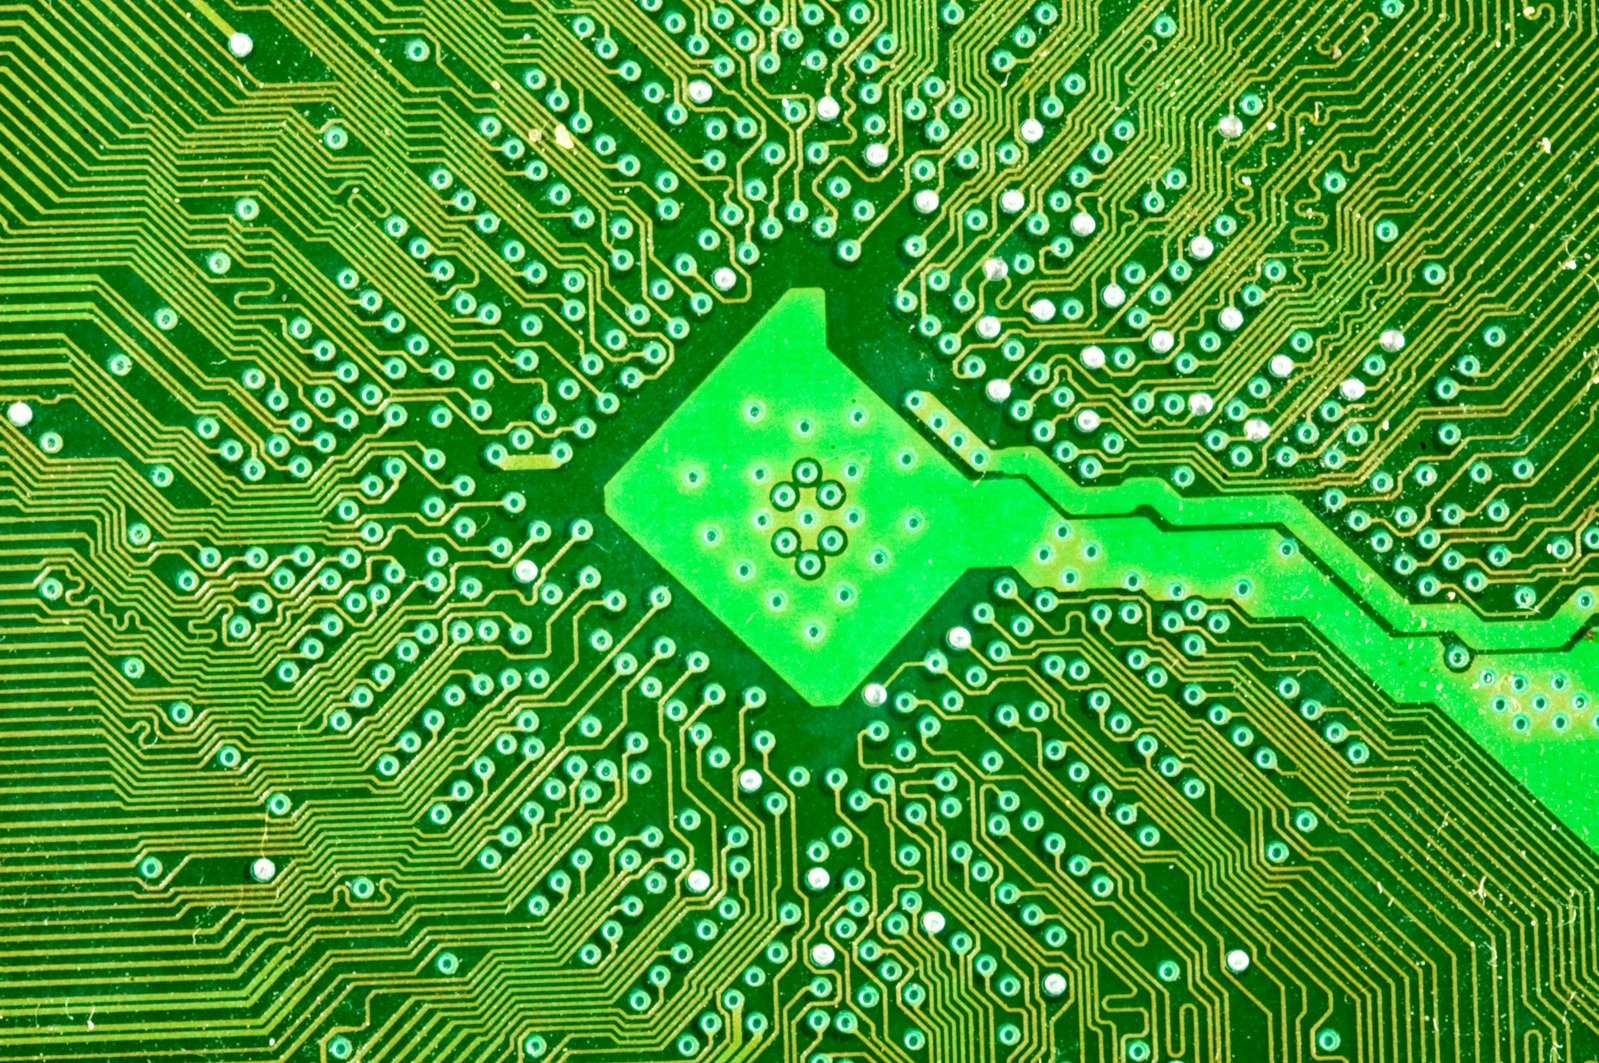 Free Circuit Board Images Pictures And Royalty Stock Photos Pcb Printed 13 Image Texture 2